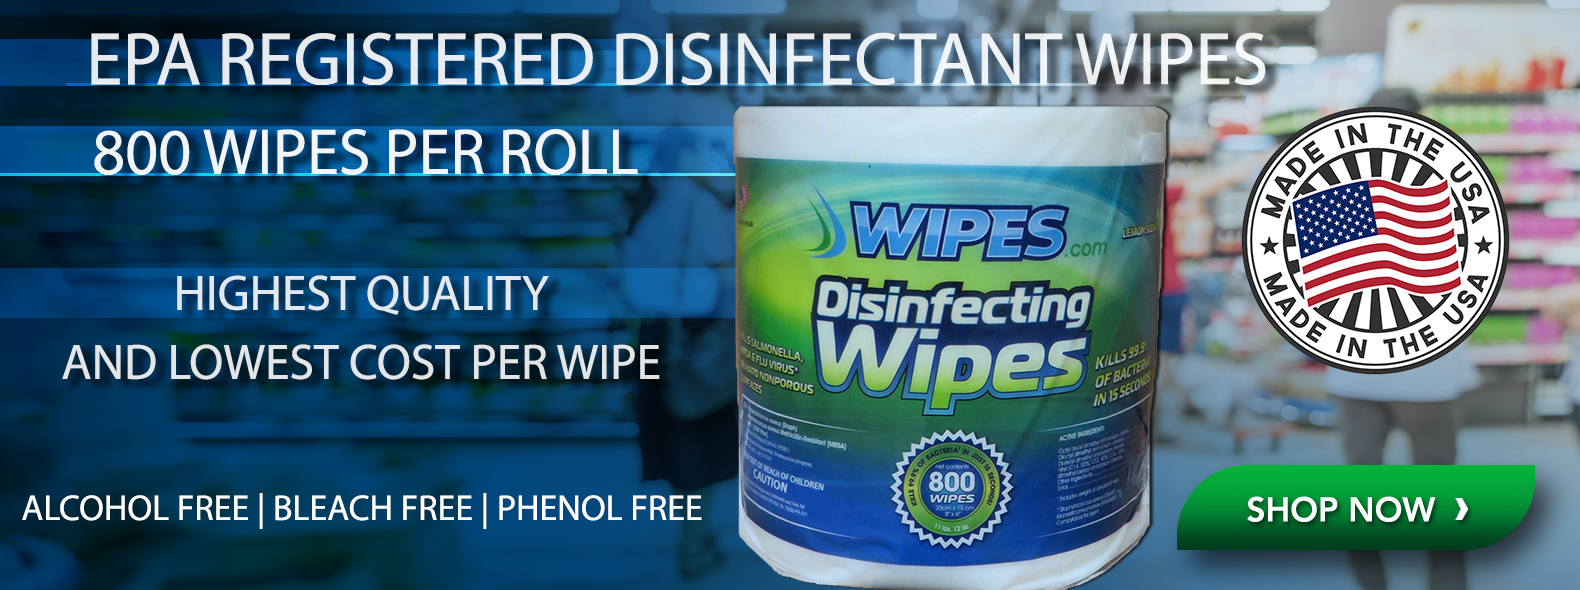 EPA Registered Disinfectant Wipes